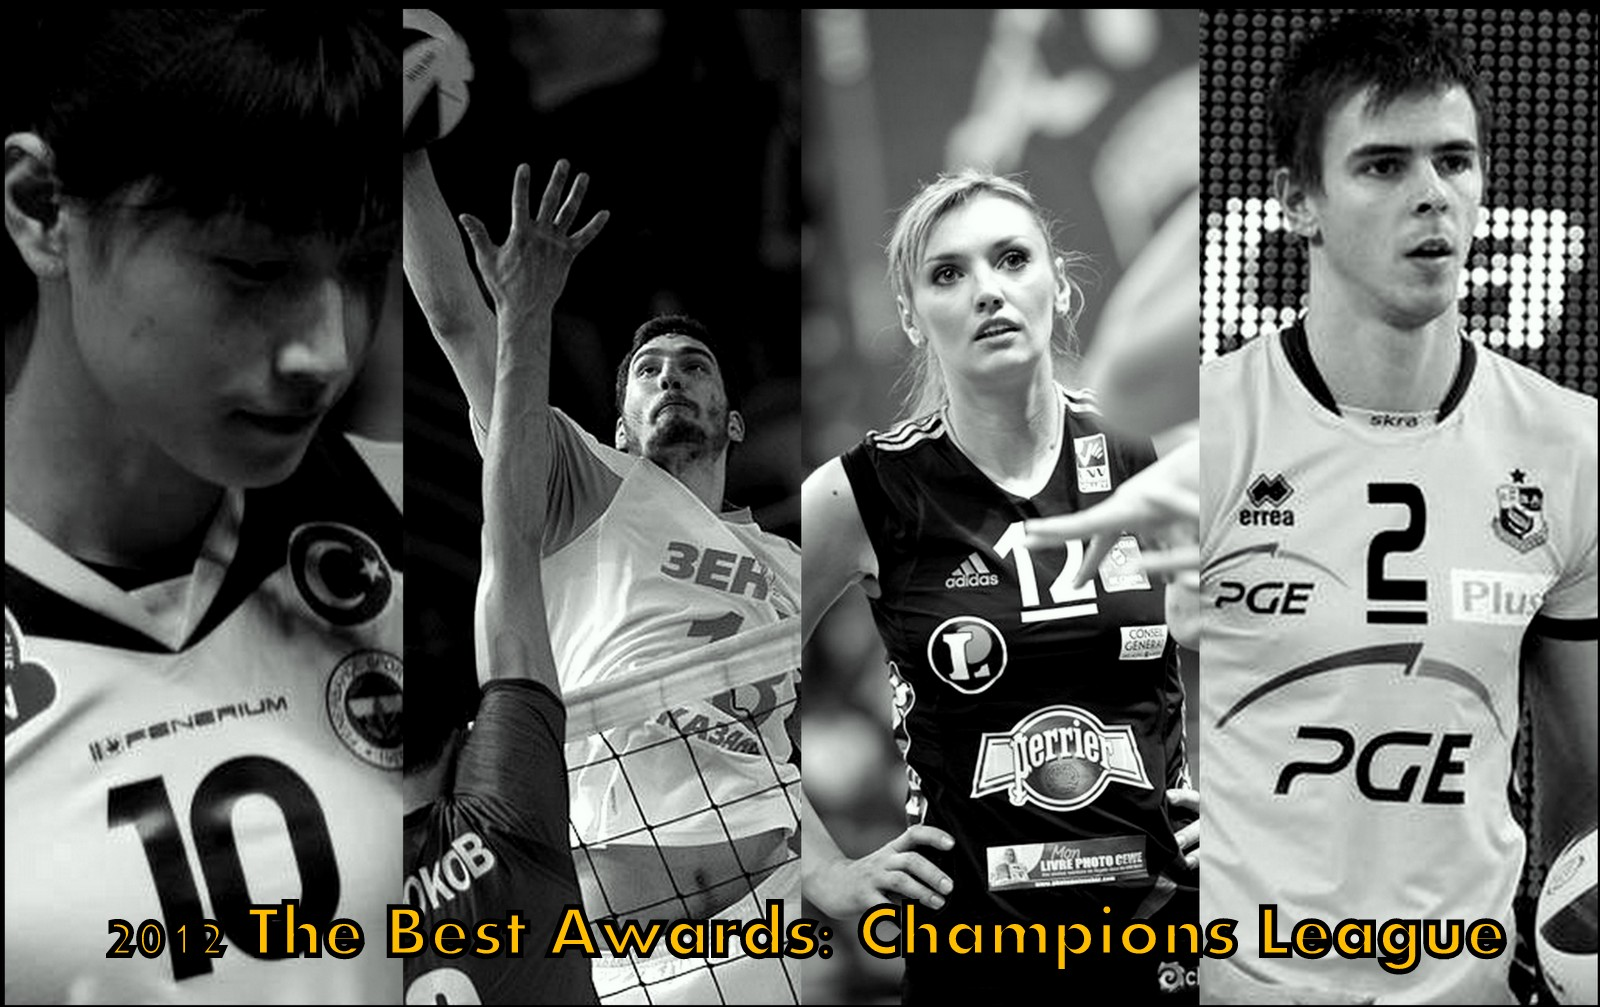 Collages 0011 The Best Awards 2012 Champions League